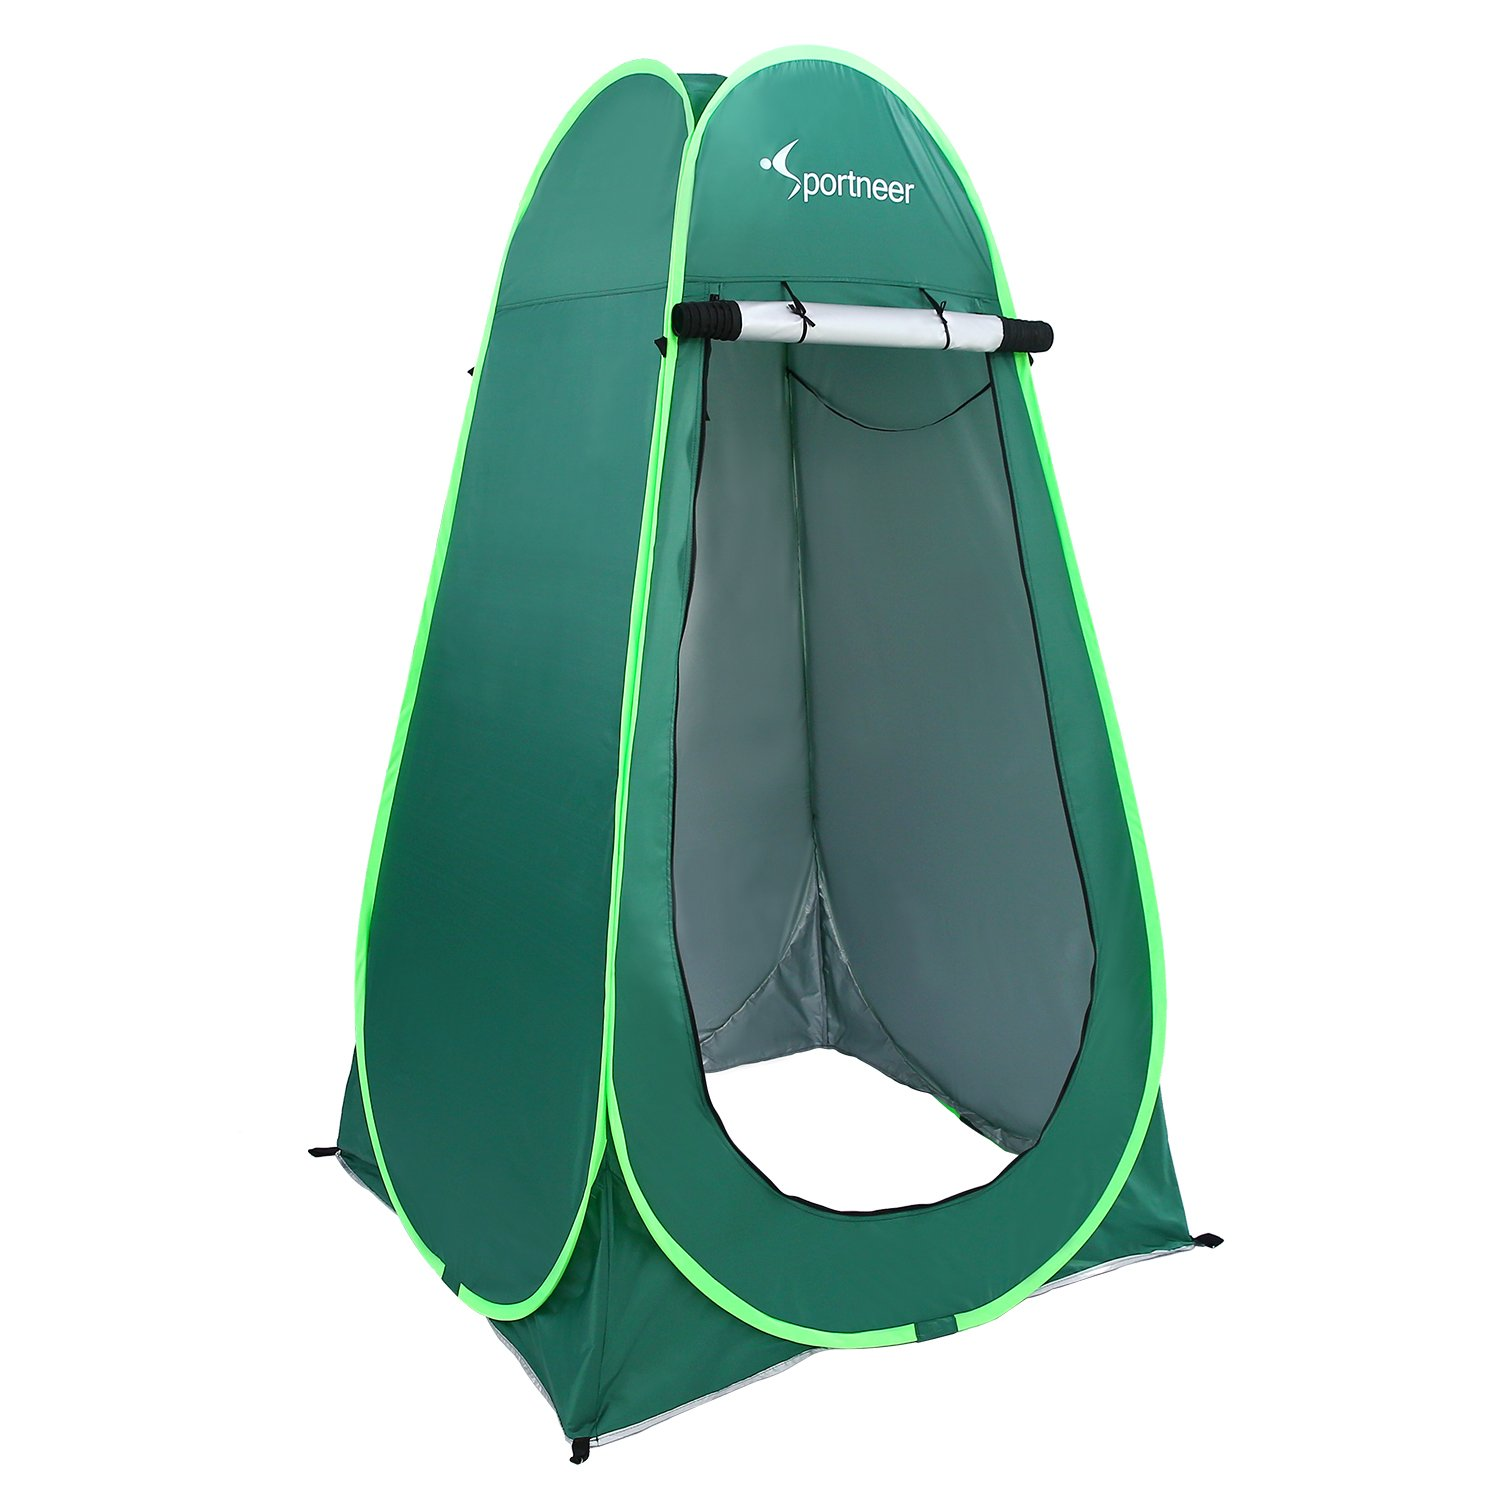 Sportneer 6.25' Portable Pop Up Changing Dressing Room Tent W/Carrying Bag for Camping Photo Shoot, Green by Sportneer